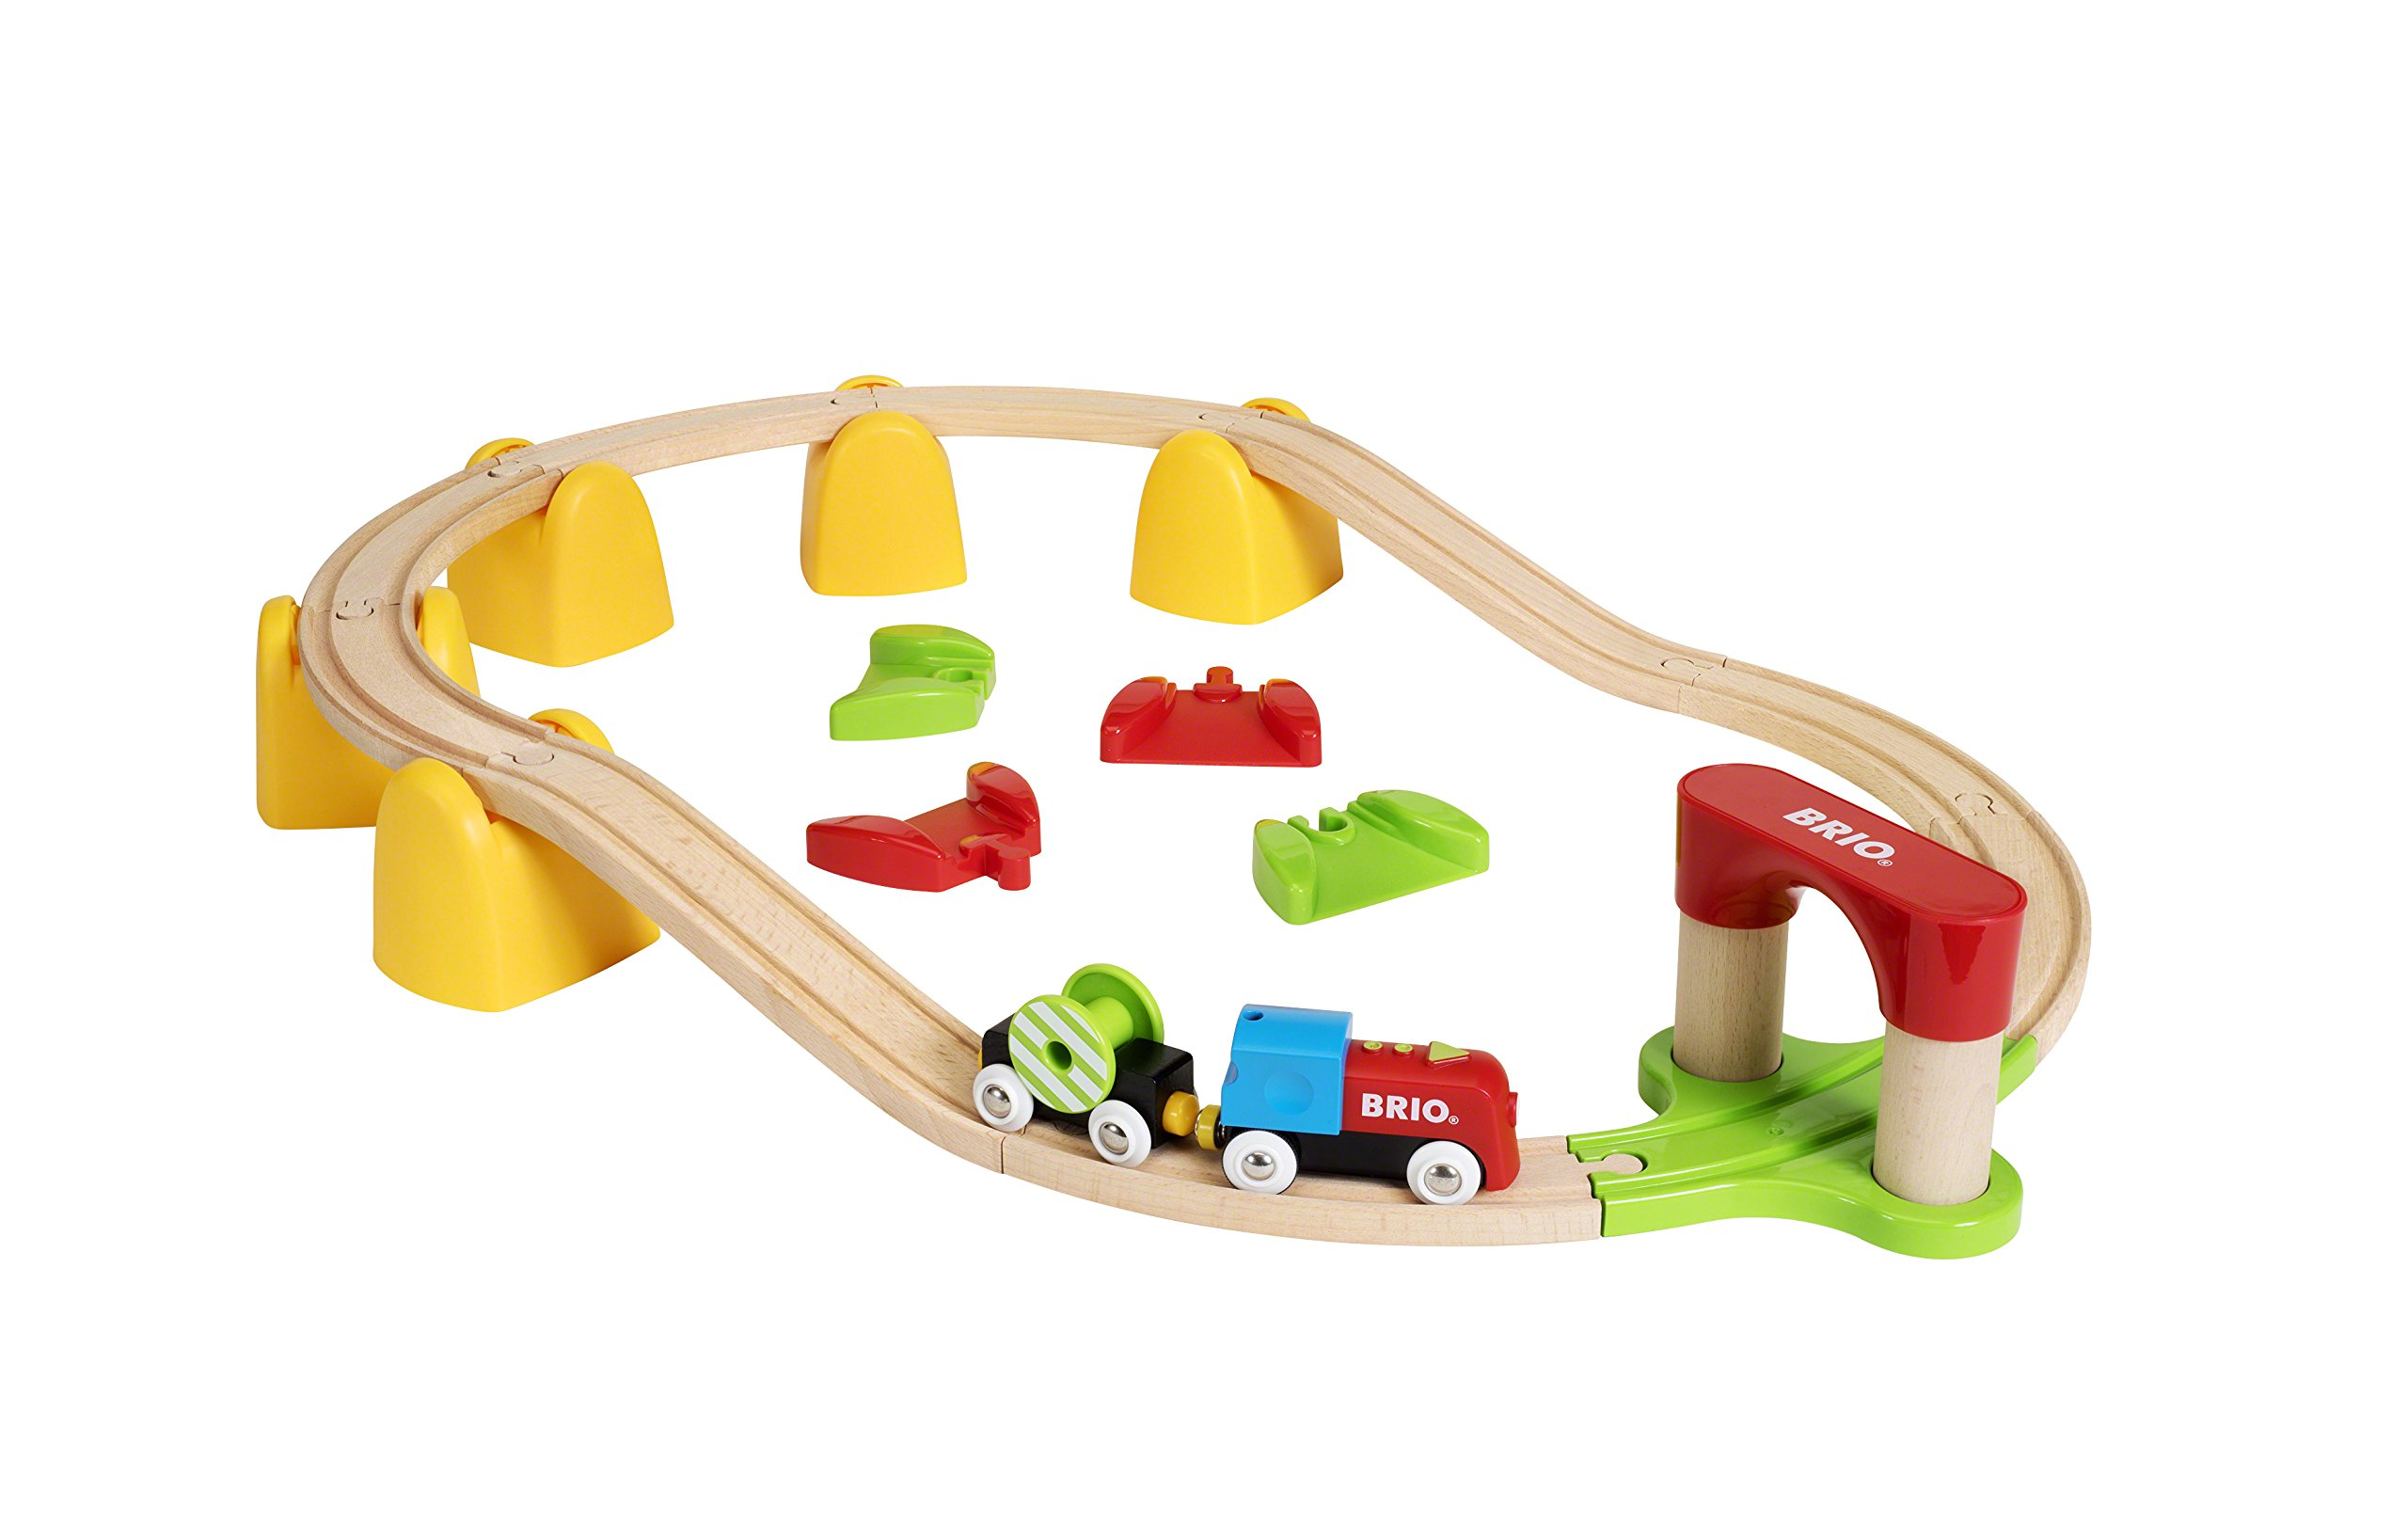 BRIO World - 33710 My First Railway Battery Operated Train Set   25 Piece Train Toy with Accessories and Wooden Tracks for Kids Ages 18 Months and Up